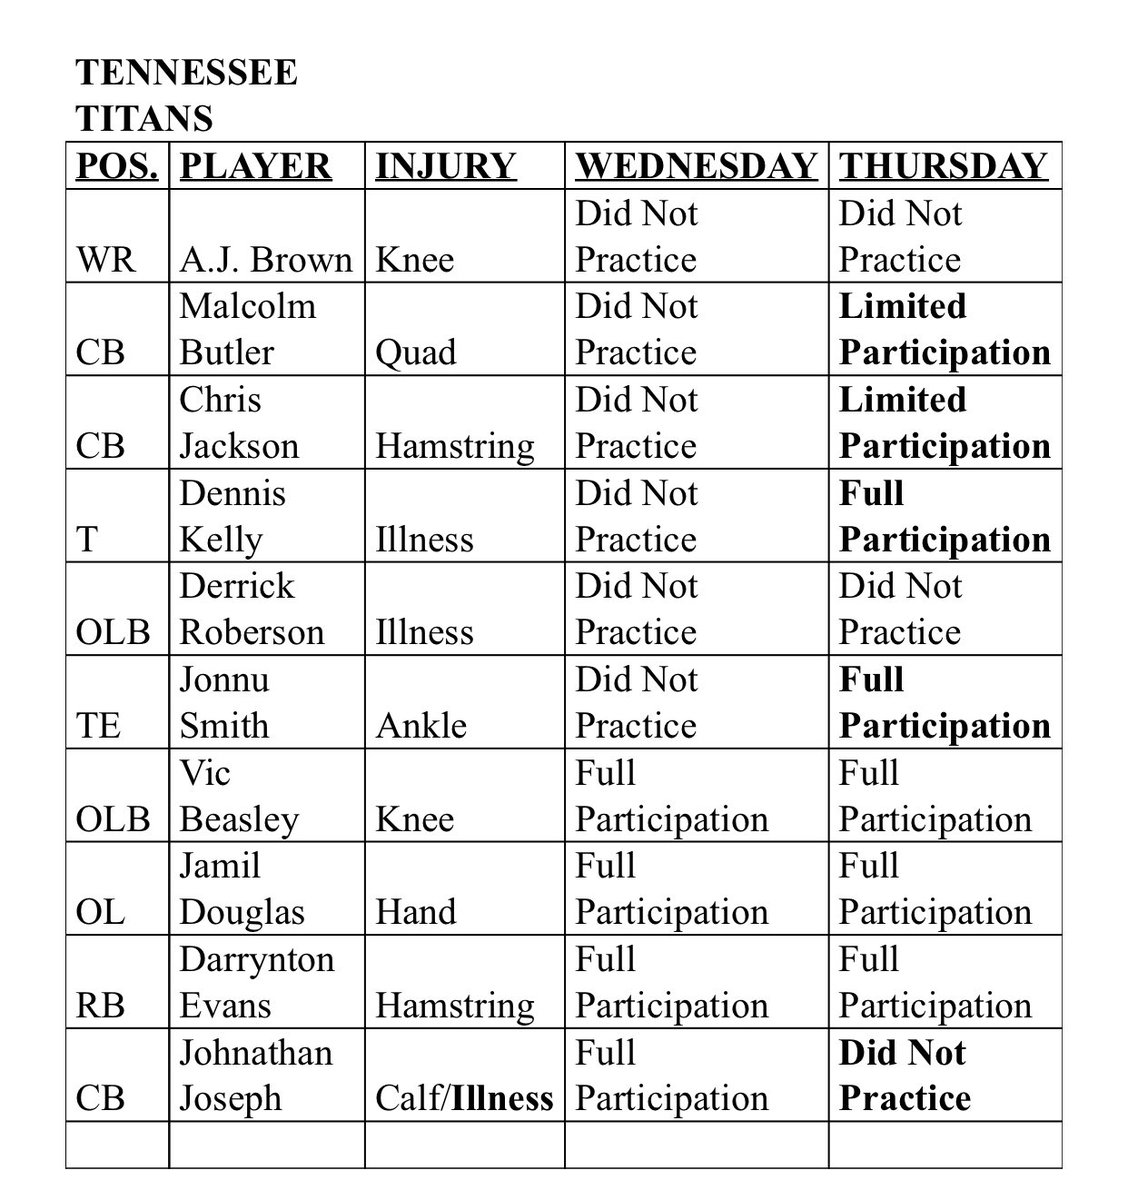 .@Titans Thursday Injury Report.